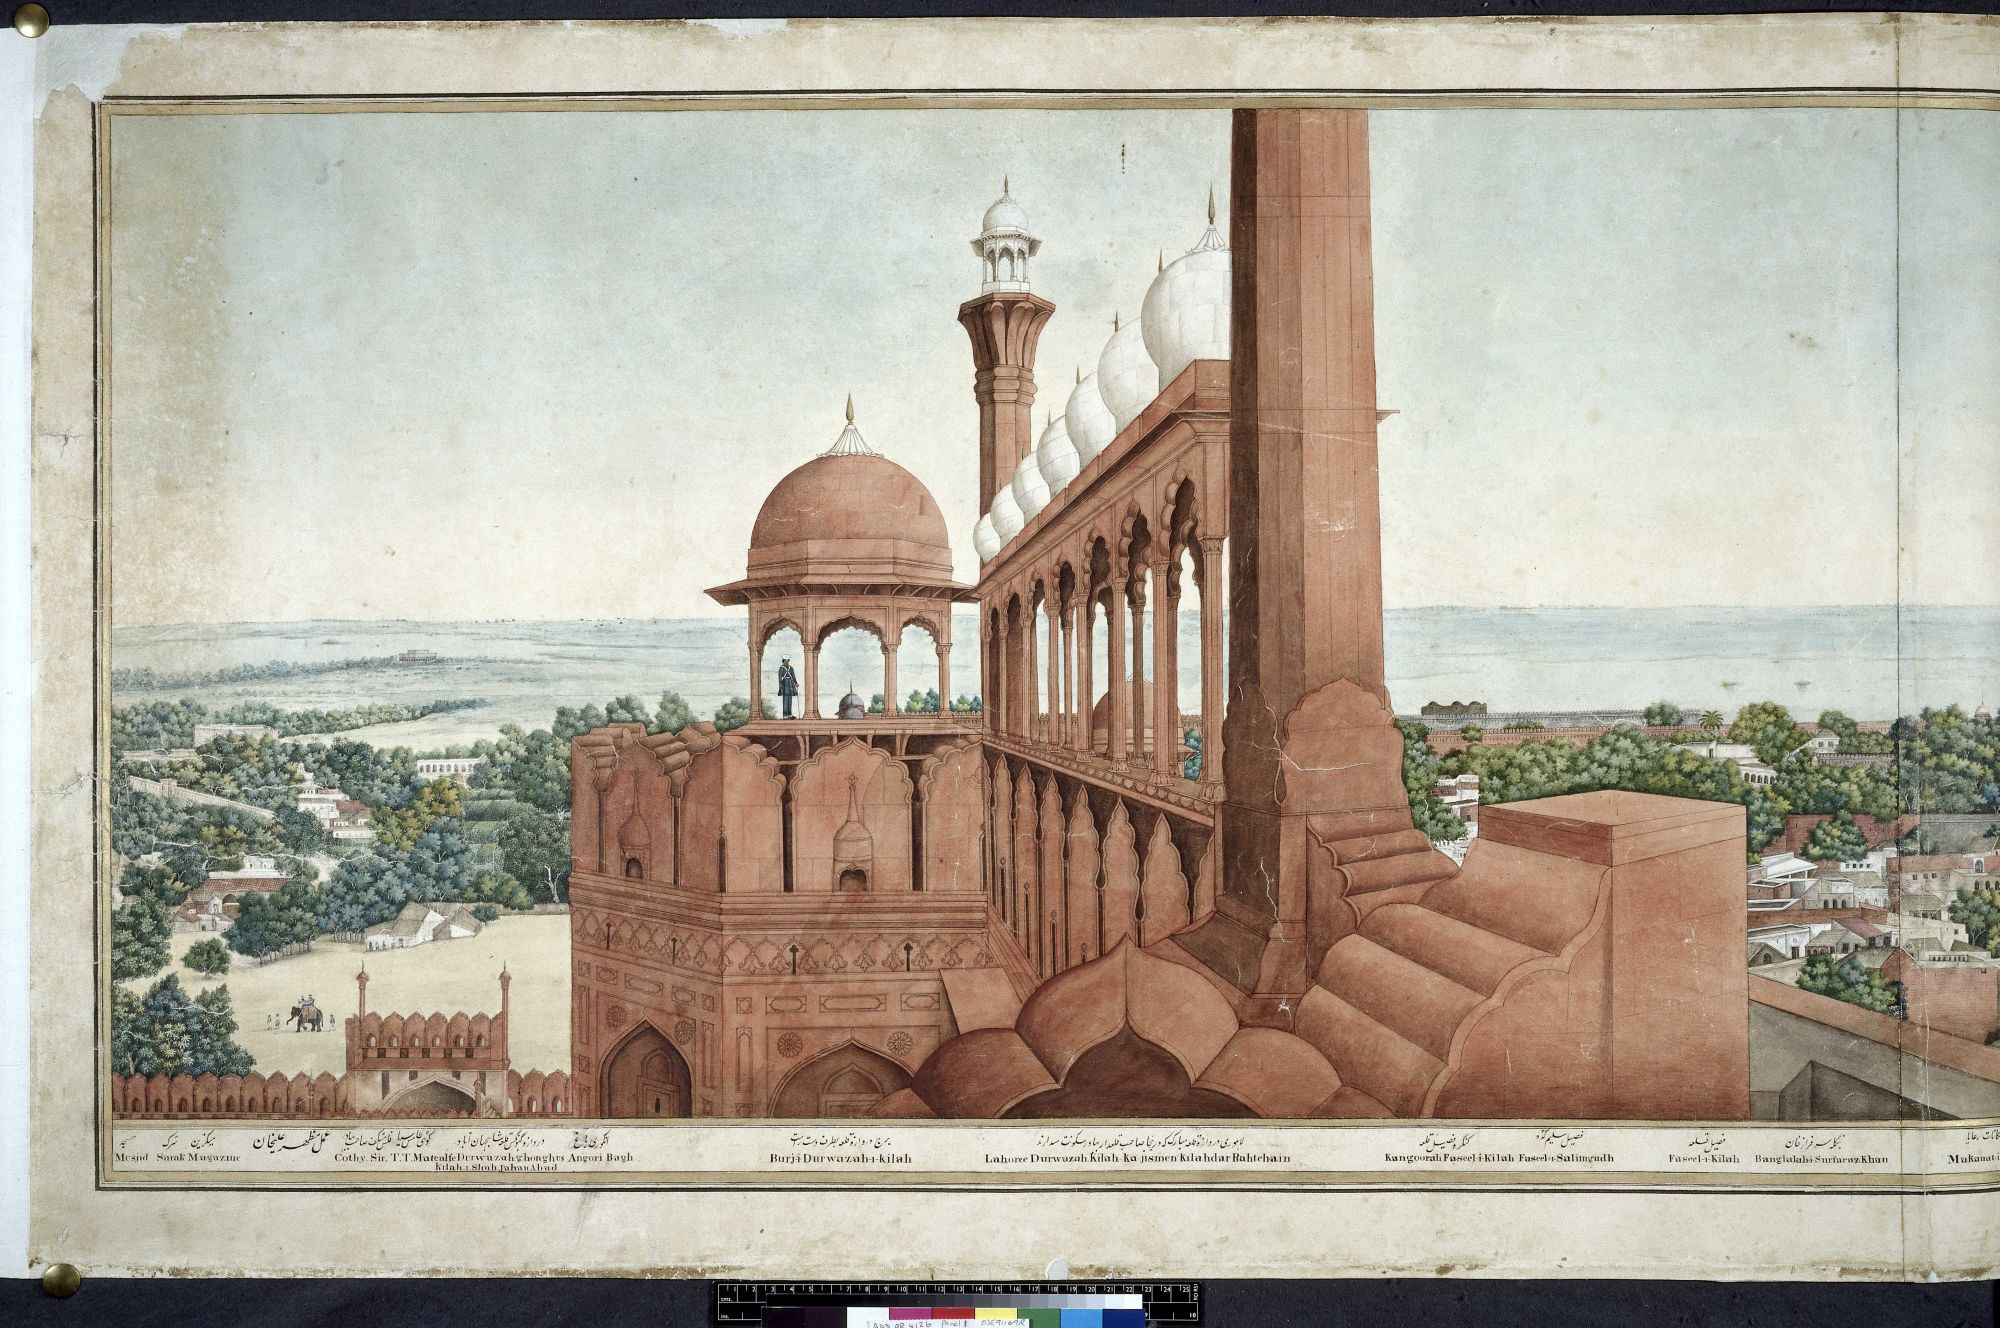 A Panorama of Delhi taken from the top of the Lahore Gate of the Red Fort (1), by Mazhar Ali Khan.